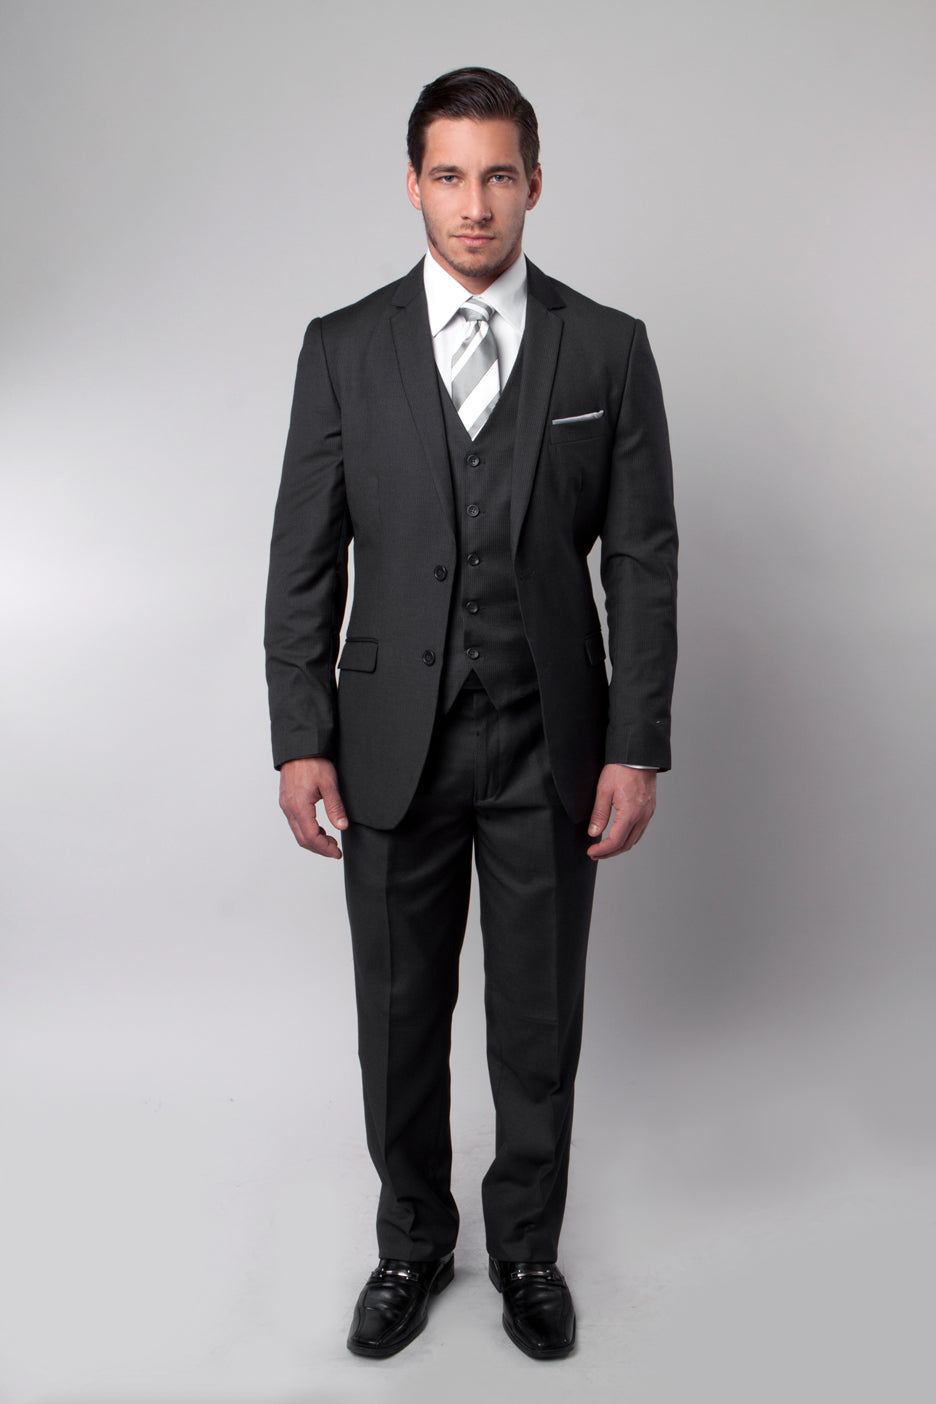 Black Pinstripe Tone on Tone 3-PC Slim Fit Stretch Suits For Men